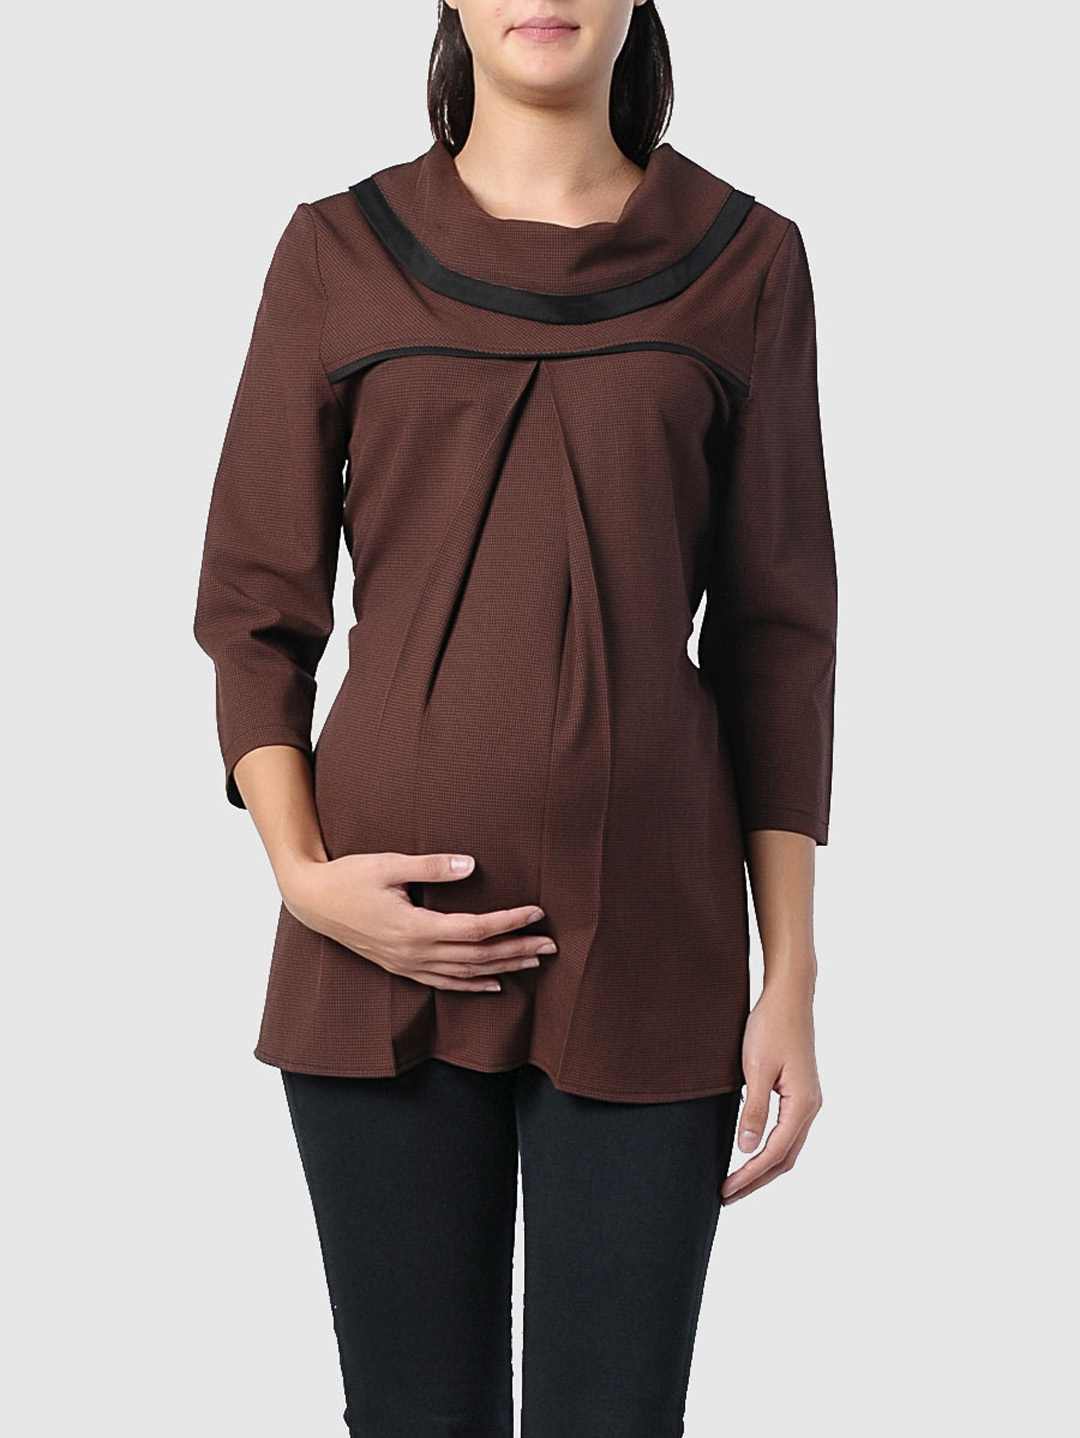 Maternity Wear Clothes Collection